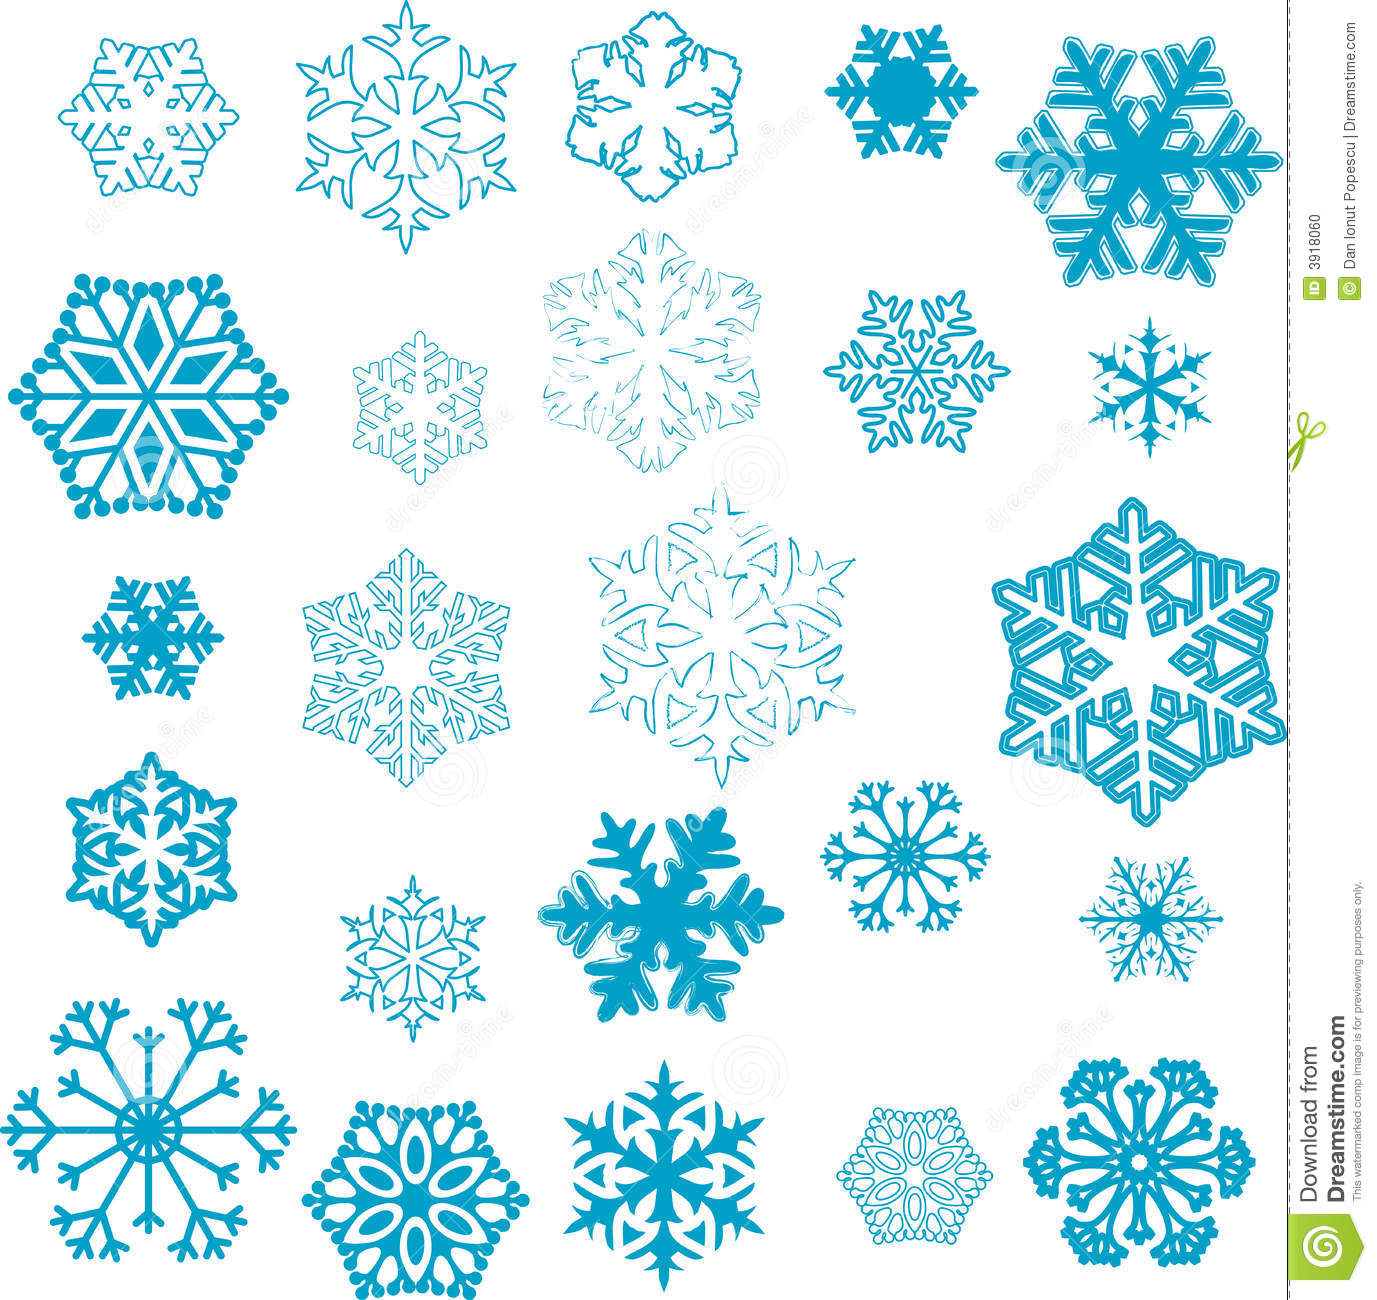 Various stylized designs of snowflakes for winter illustration.: www.dreamstime.com/stock-photo-snowflake-designs-image3918060